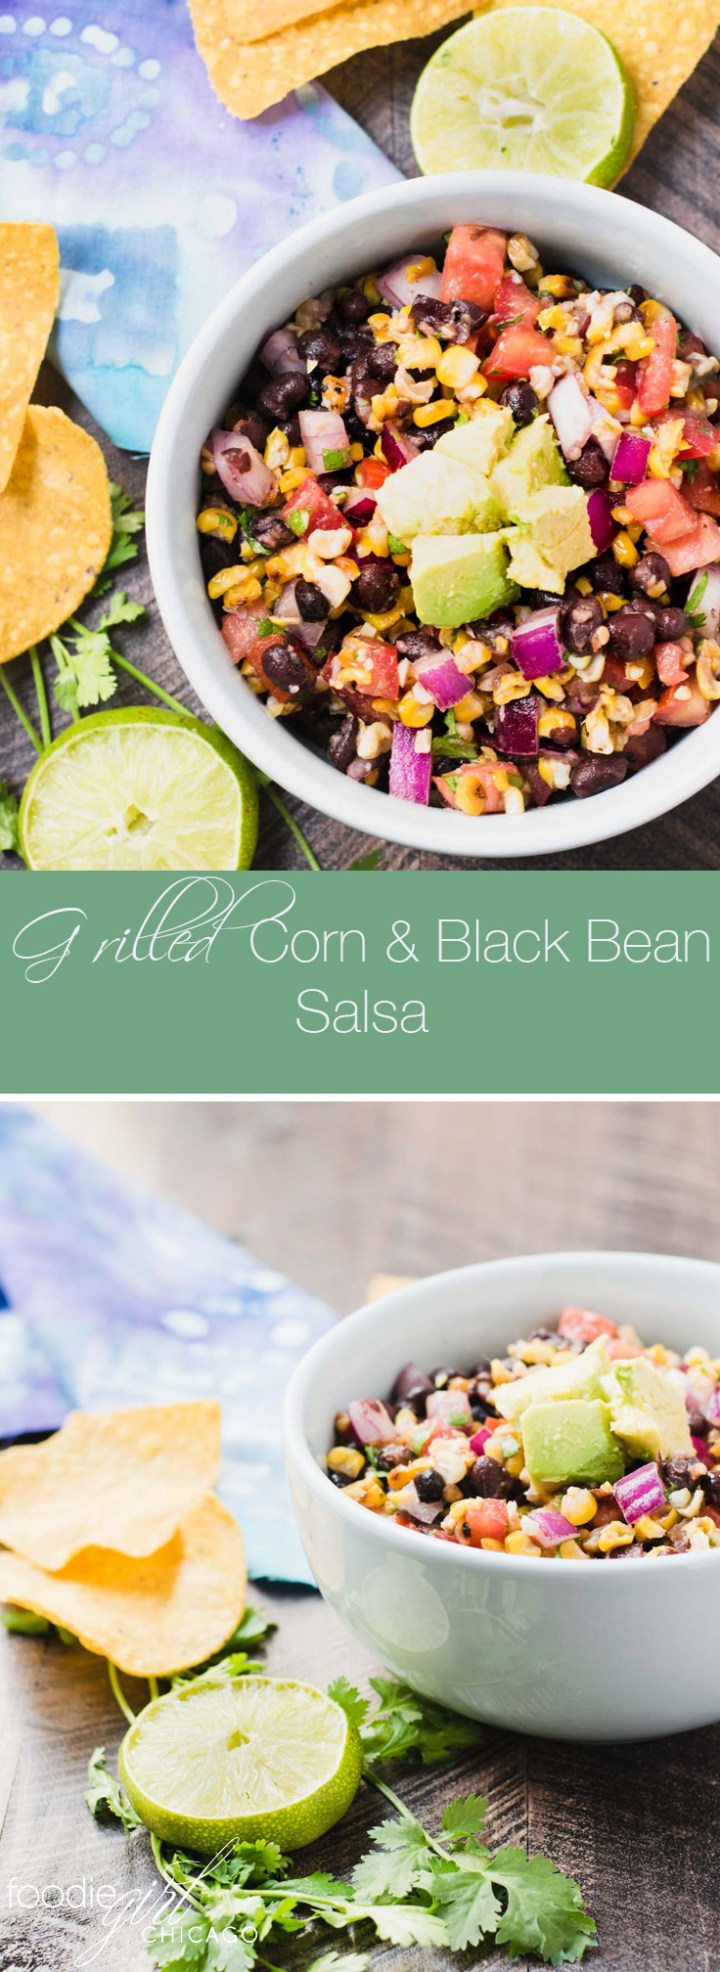 This grilled corn and black bean salsa is loaded with amazing flavors making the perfect dip for summer parties.